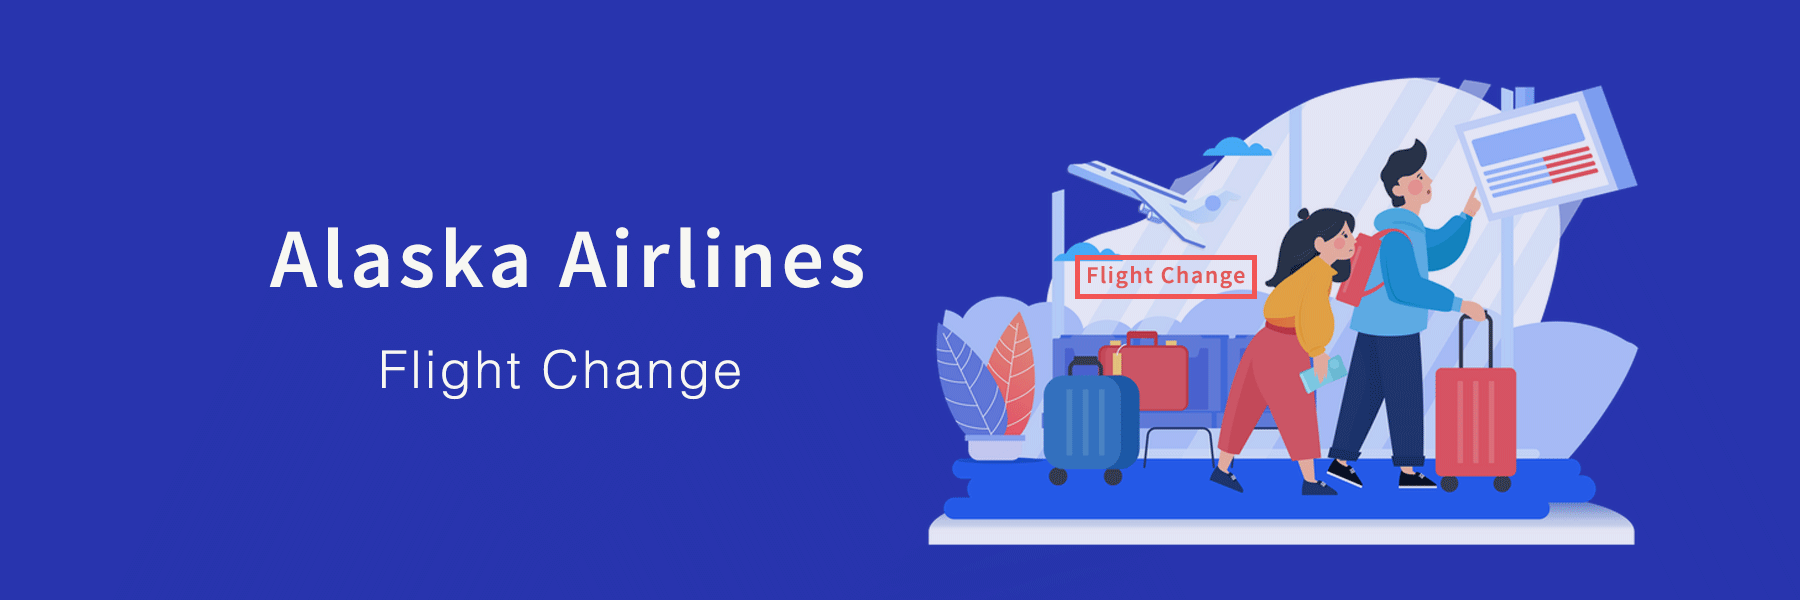 Alaska Airlines Change Flight